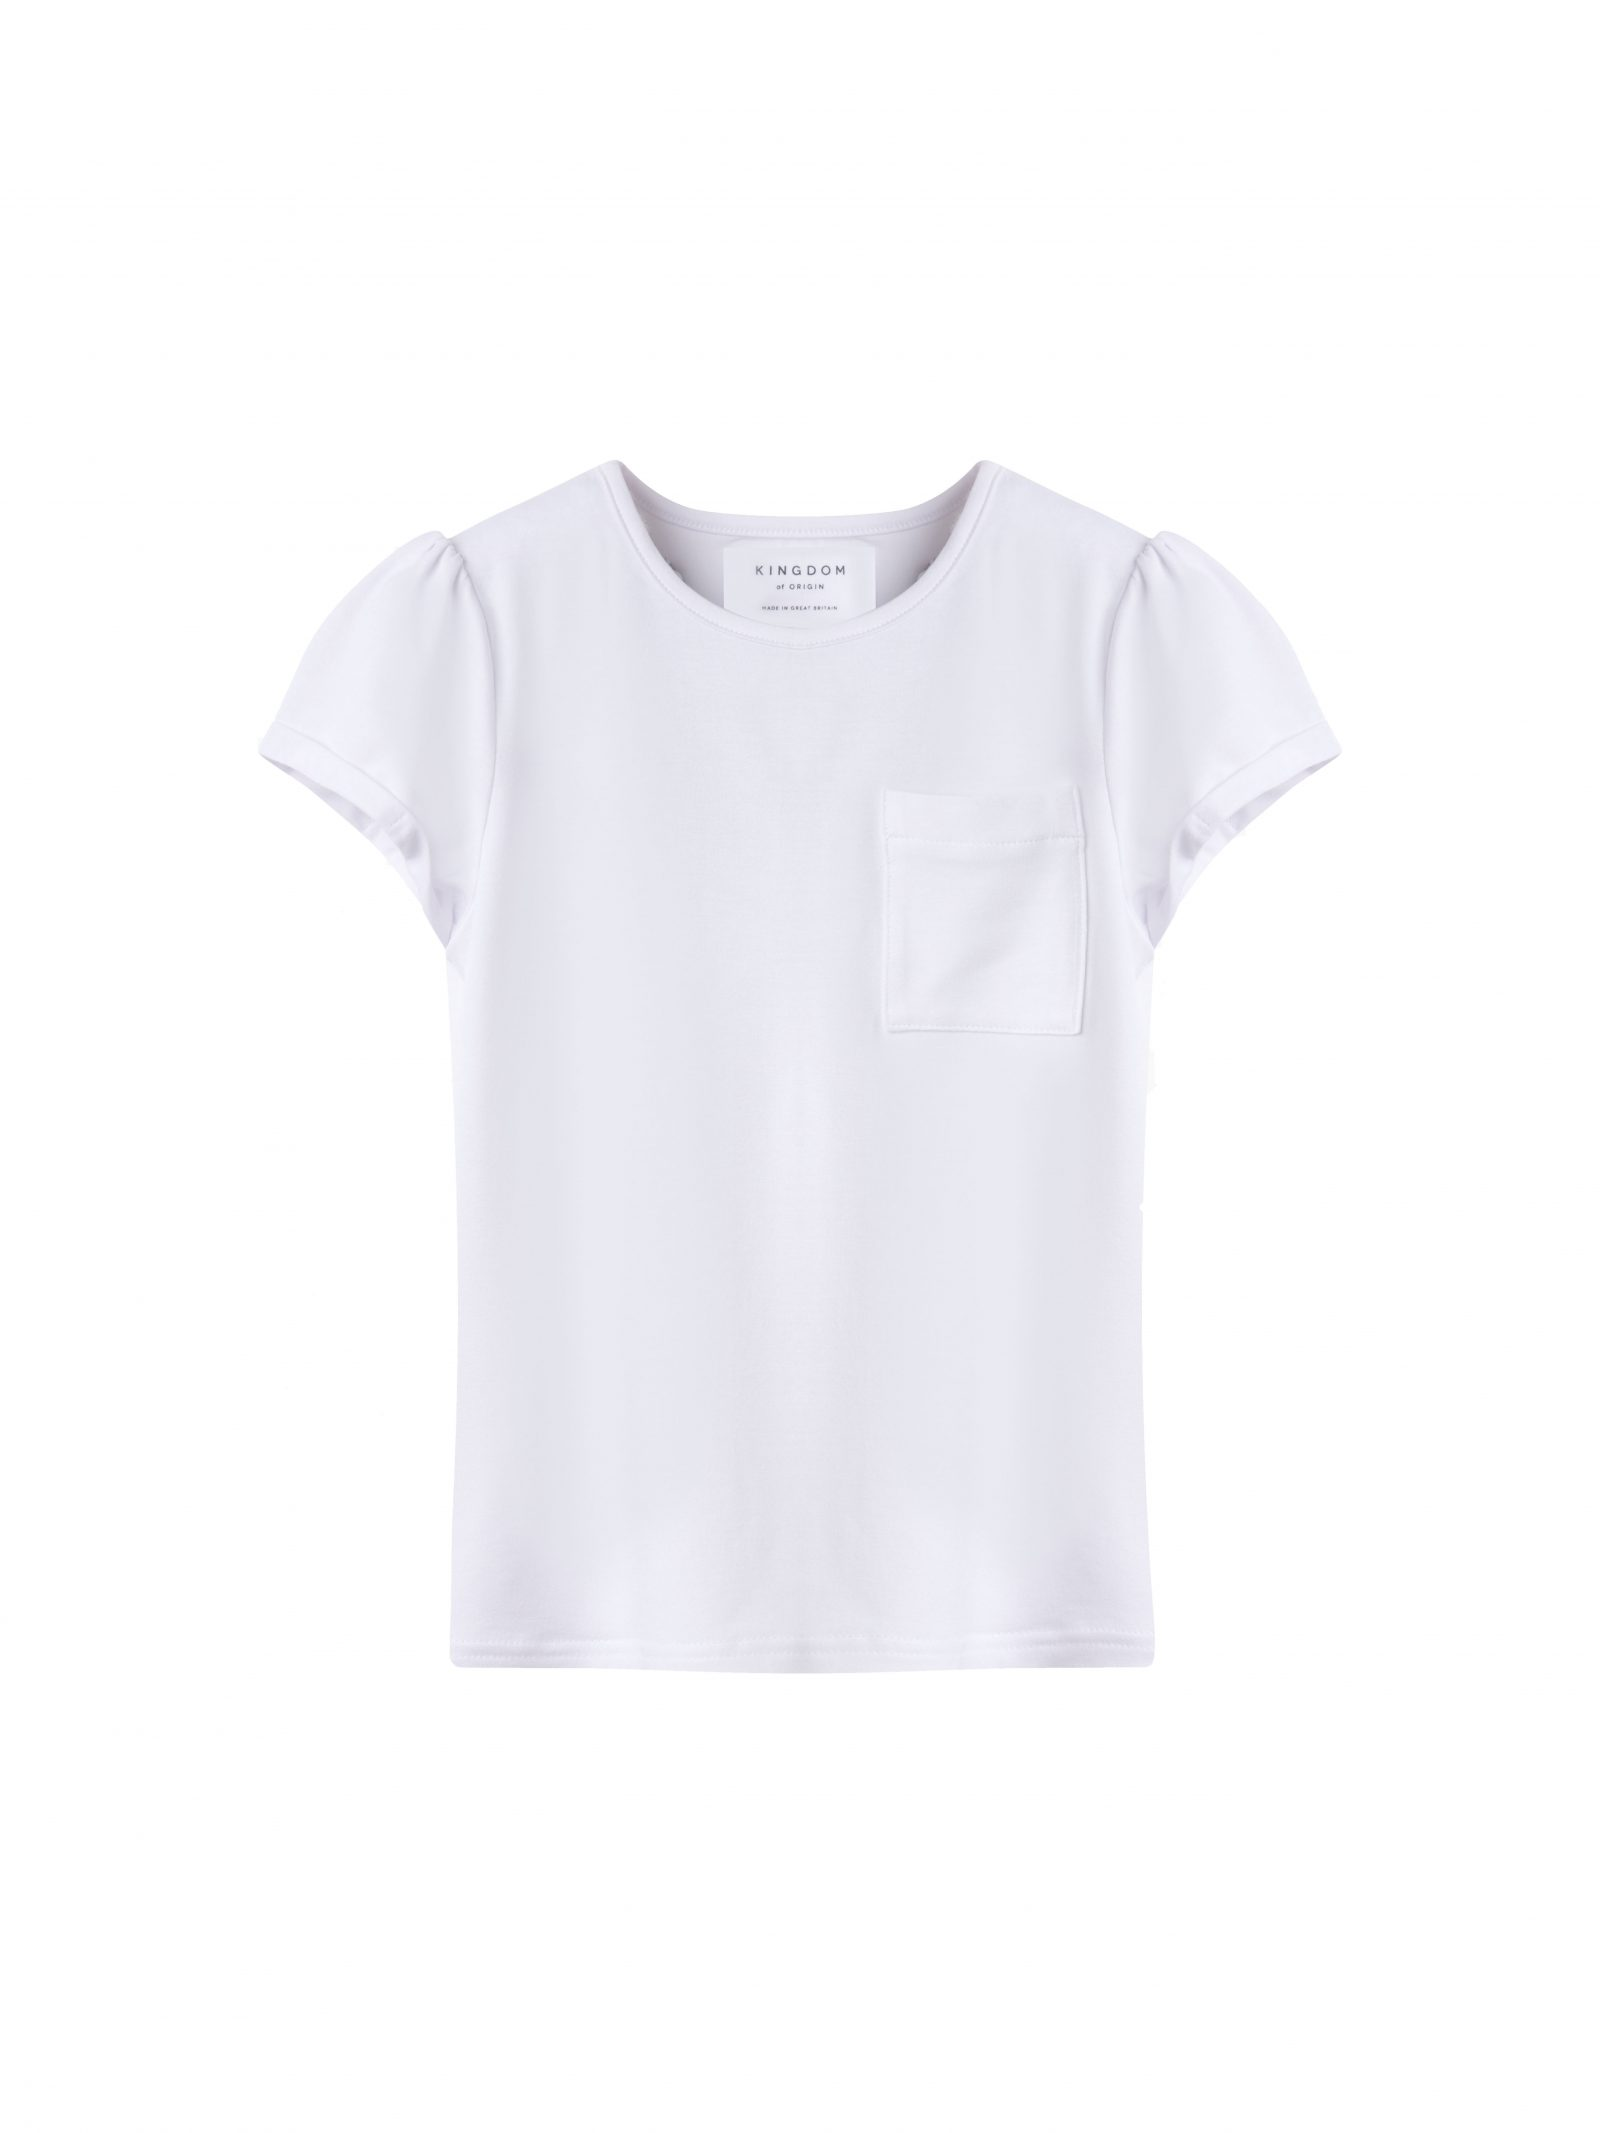 Kate T-shirt - White